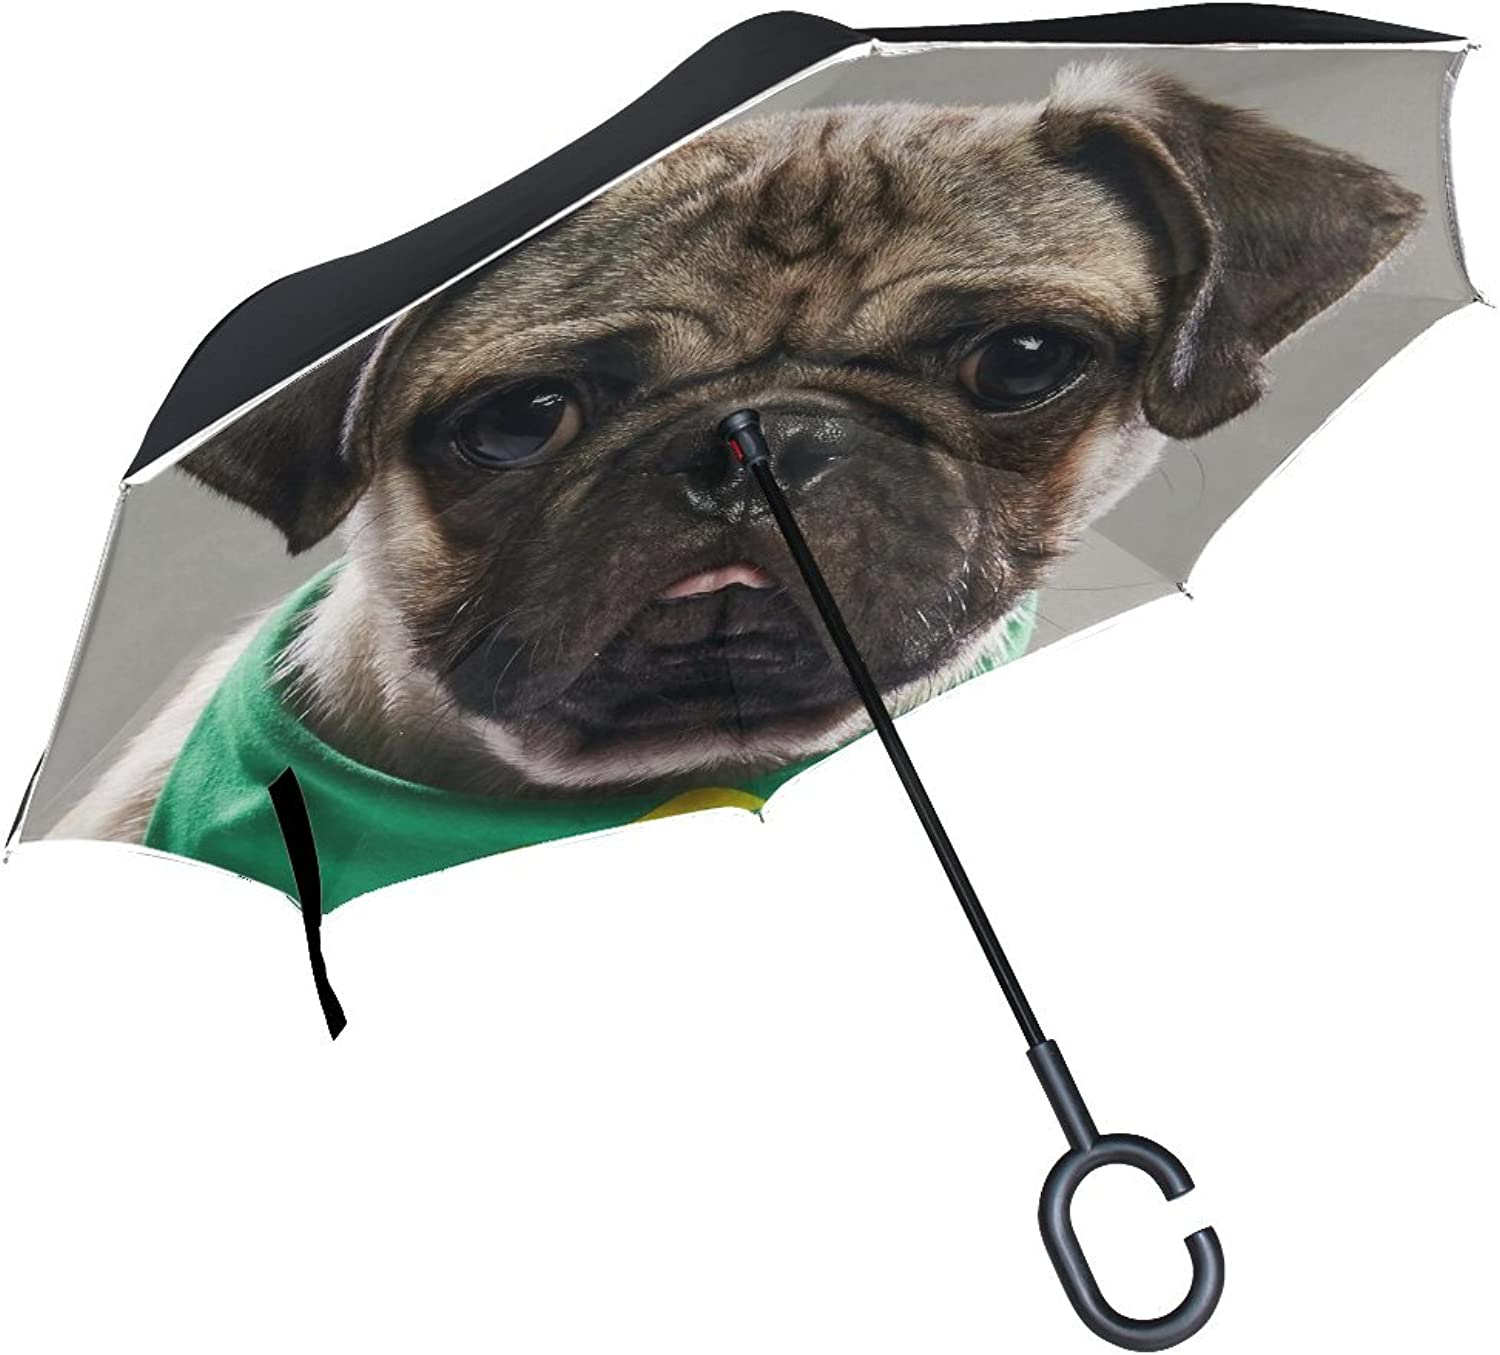 Animal Dog Pug Black Yellow Mix Pet Fluffy Puppy Ingreened Umbrella Large Double Layer Outdoor Rain Sun Car Reversible Umbrella